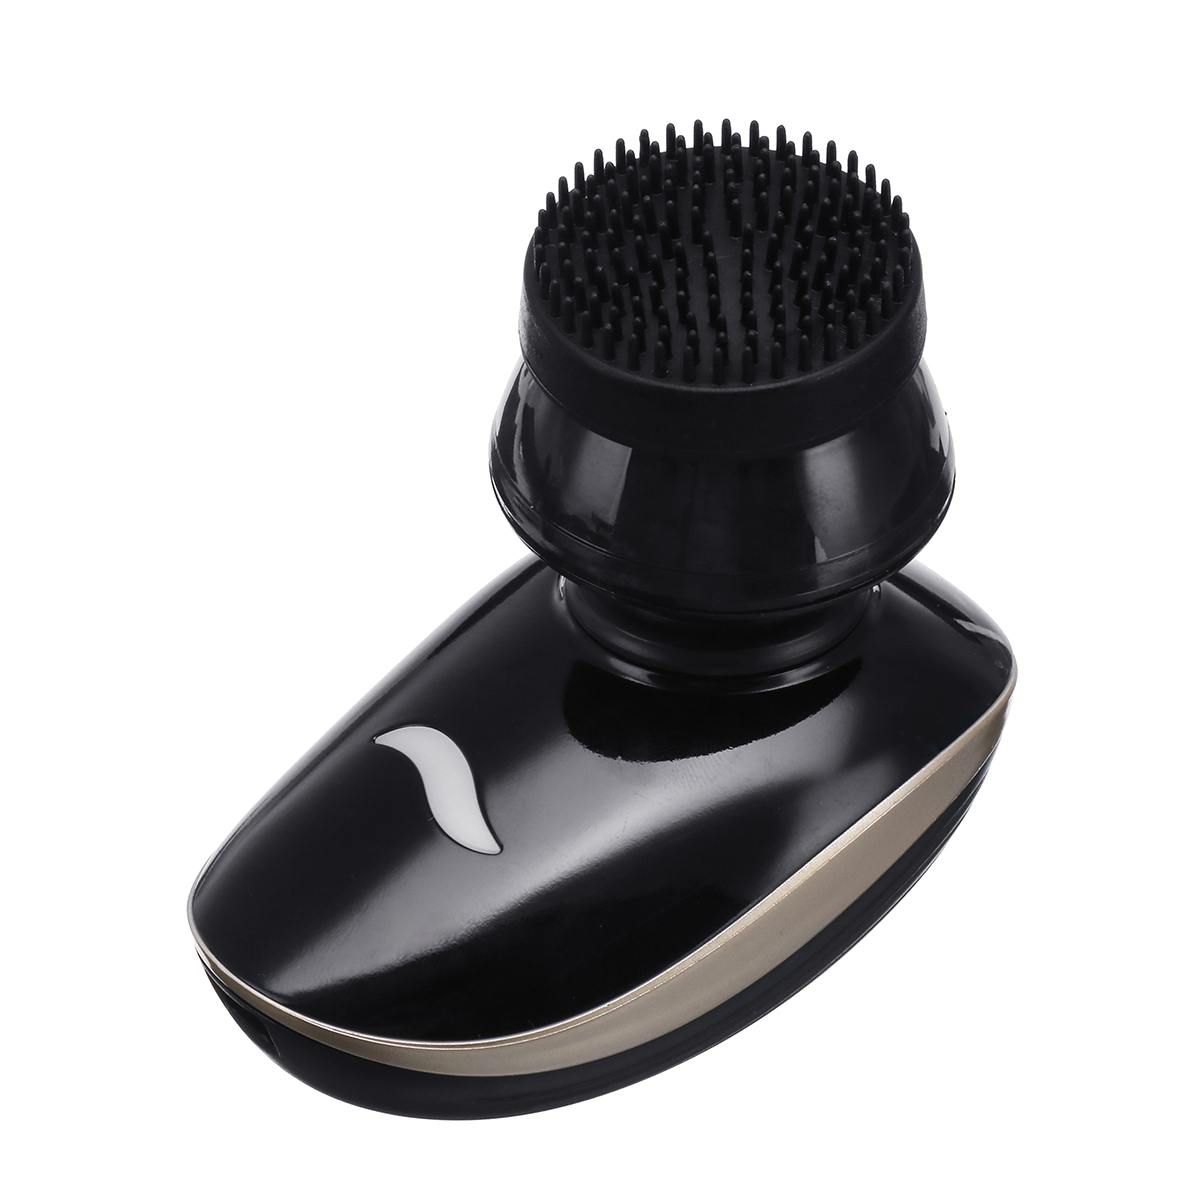 5 In 1 Electric Shaver Electric Shaver Razor Rechargeable Razor Wash Optical Head Machine